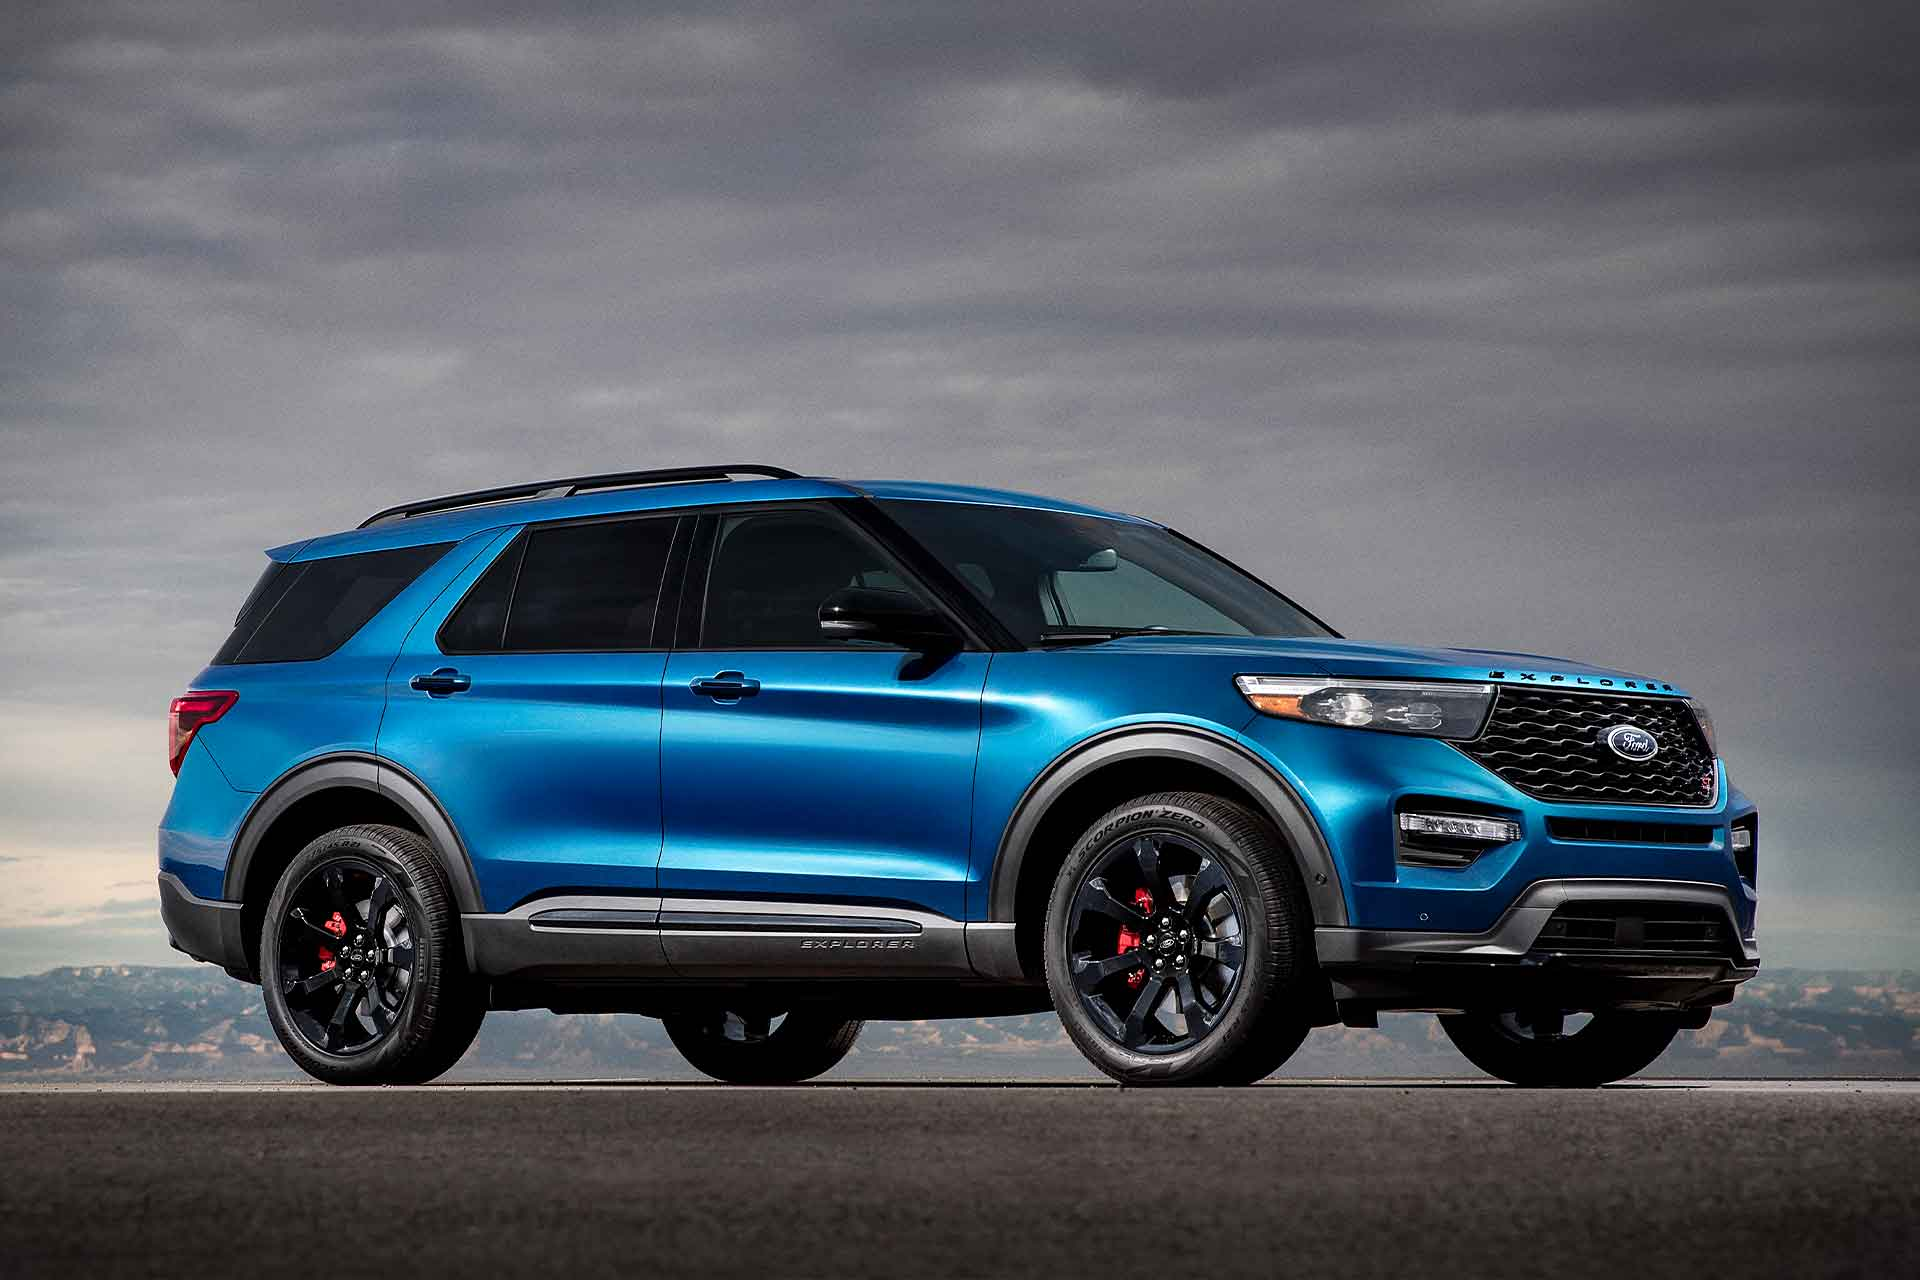 62 The Best Ford Explorer 2020 Performance And New Engine